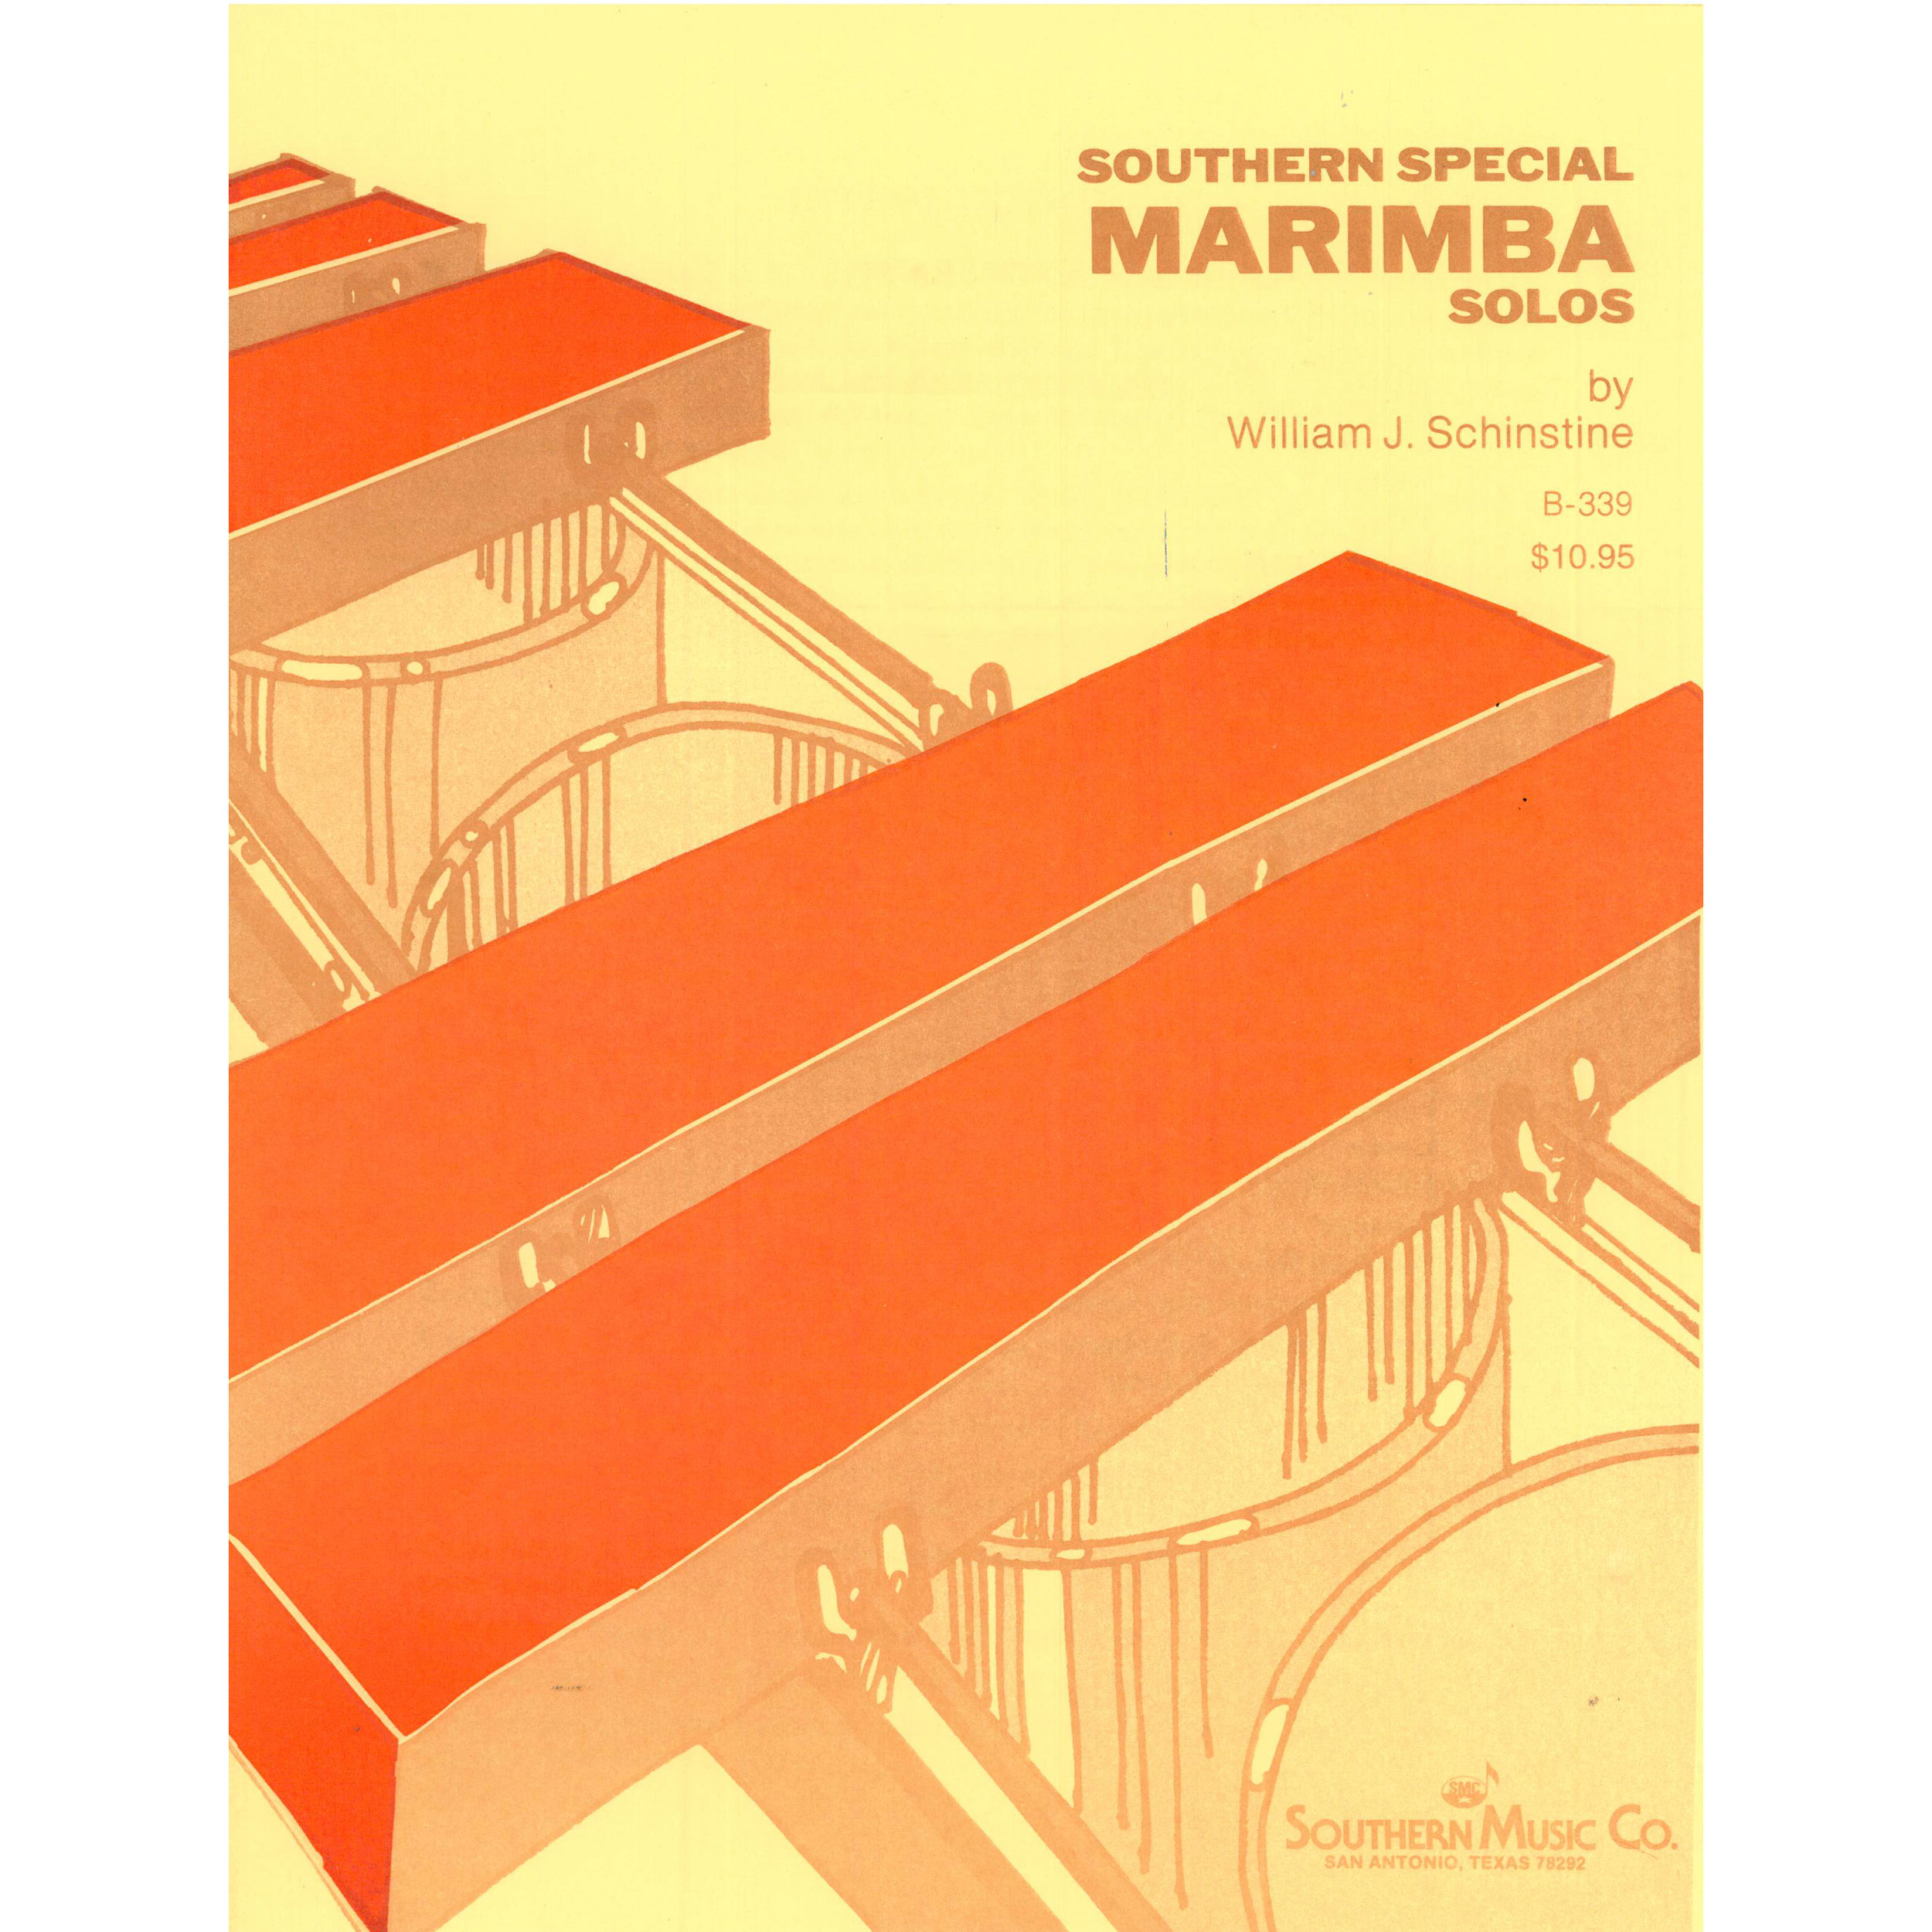 Southern Special Marimba Solos by William Schinstine